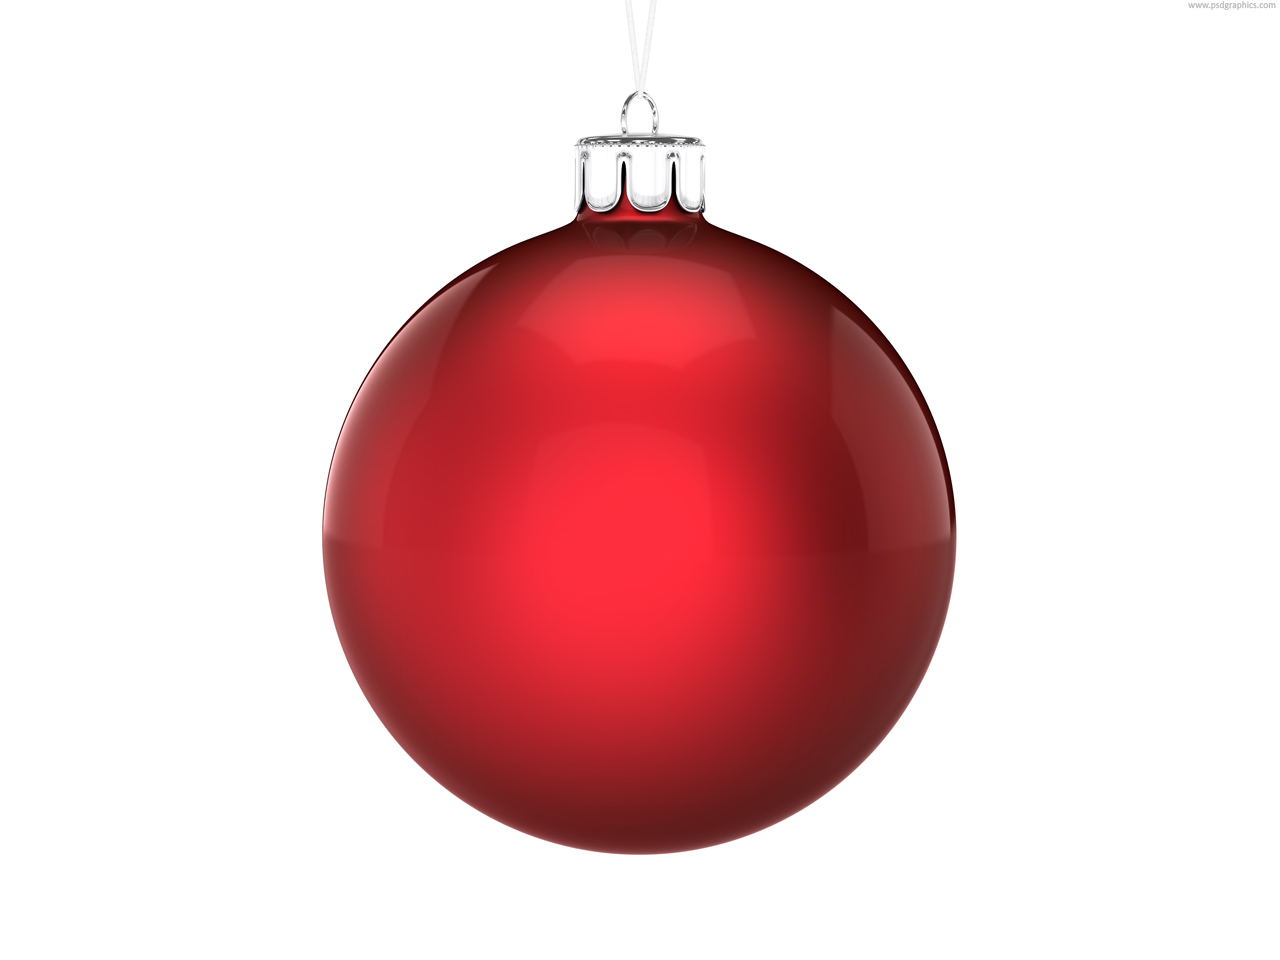 1280x960 christmas ball clipart